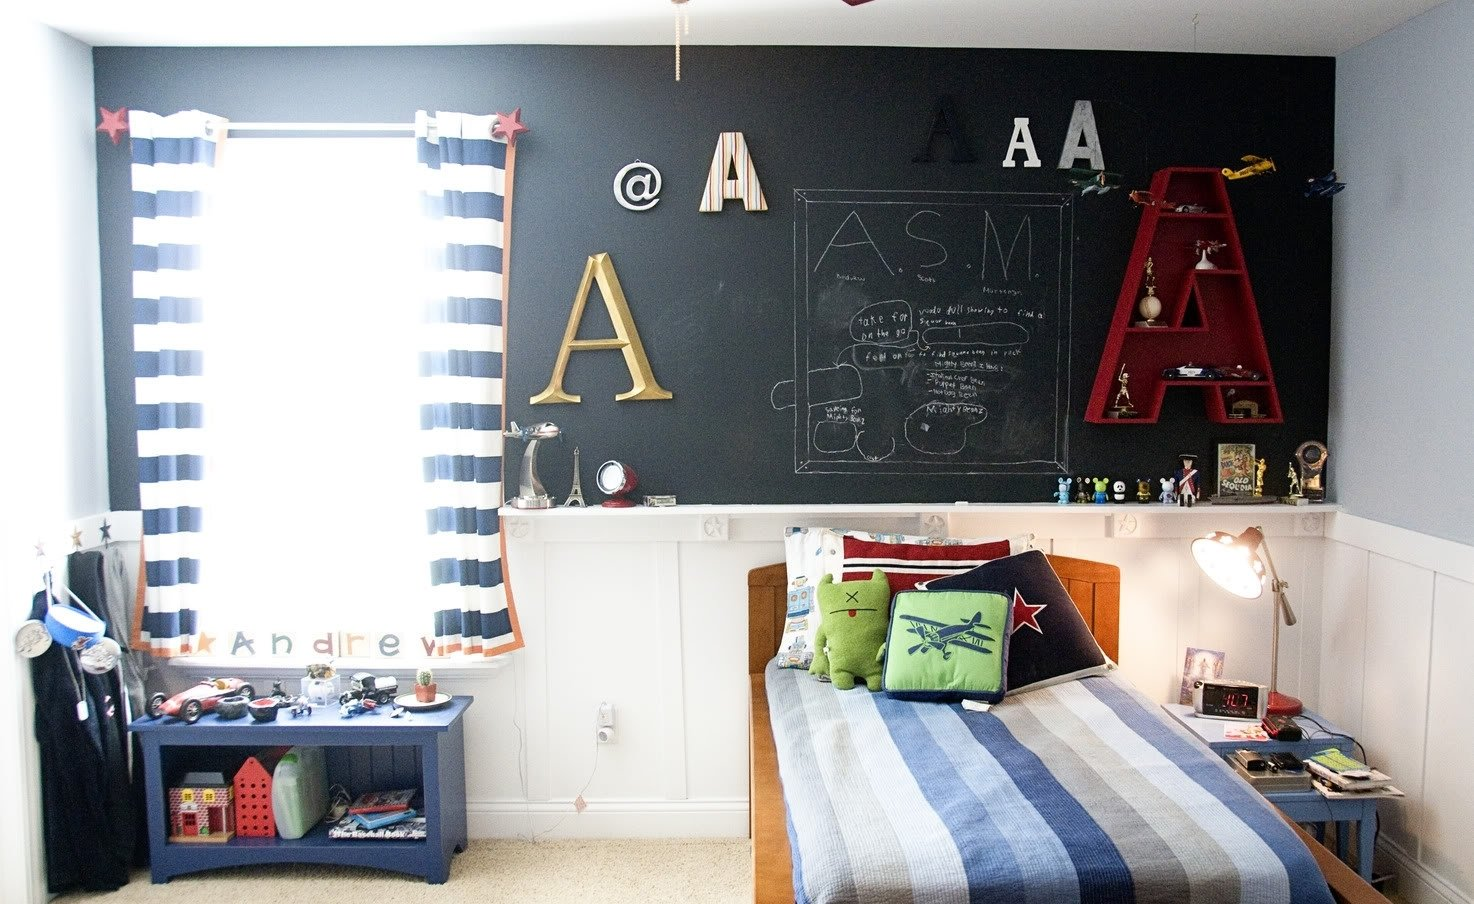 10 Most Popular Ideas For A Boys Room cool bedroom ideas 12 boy rooms todays creative life 2020